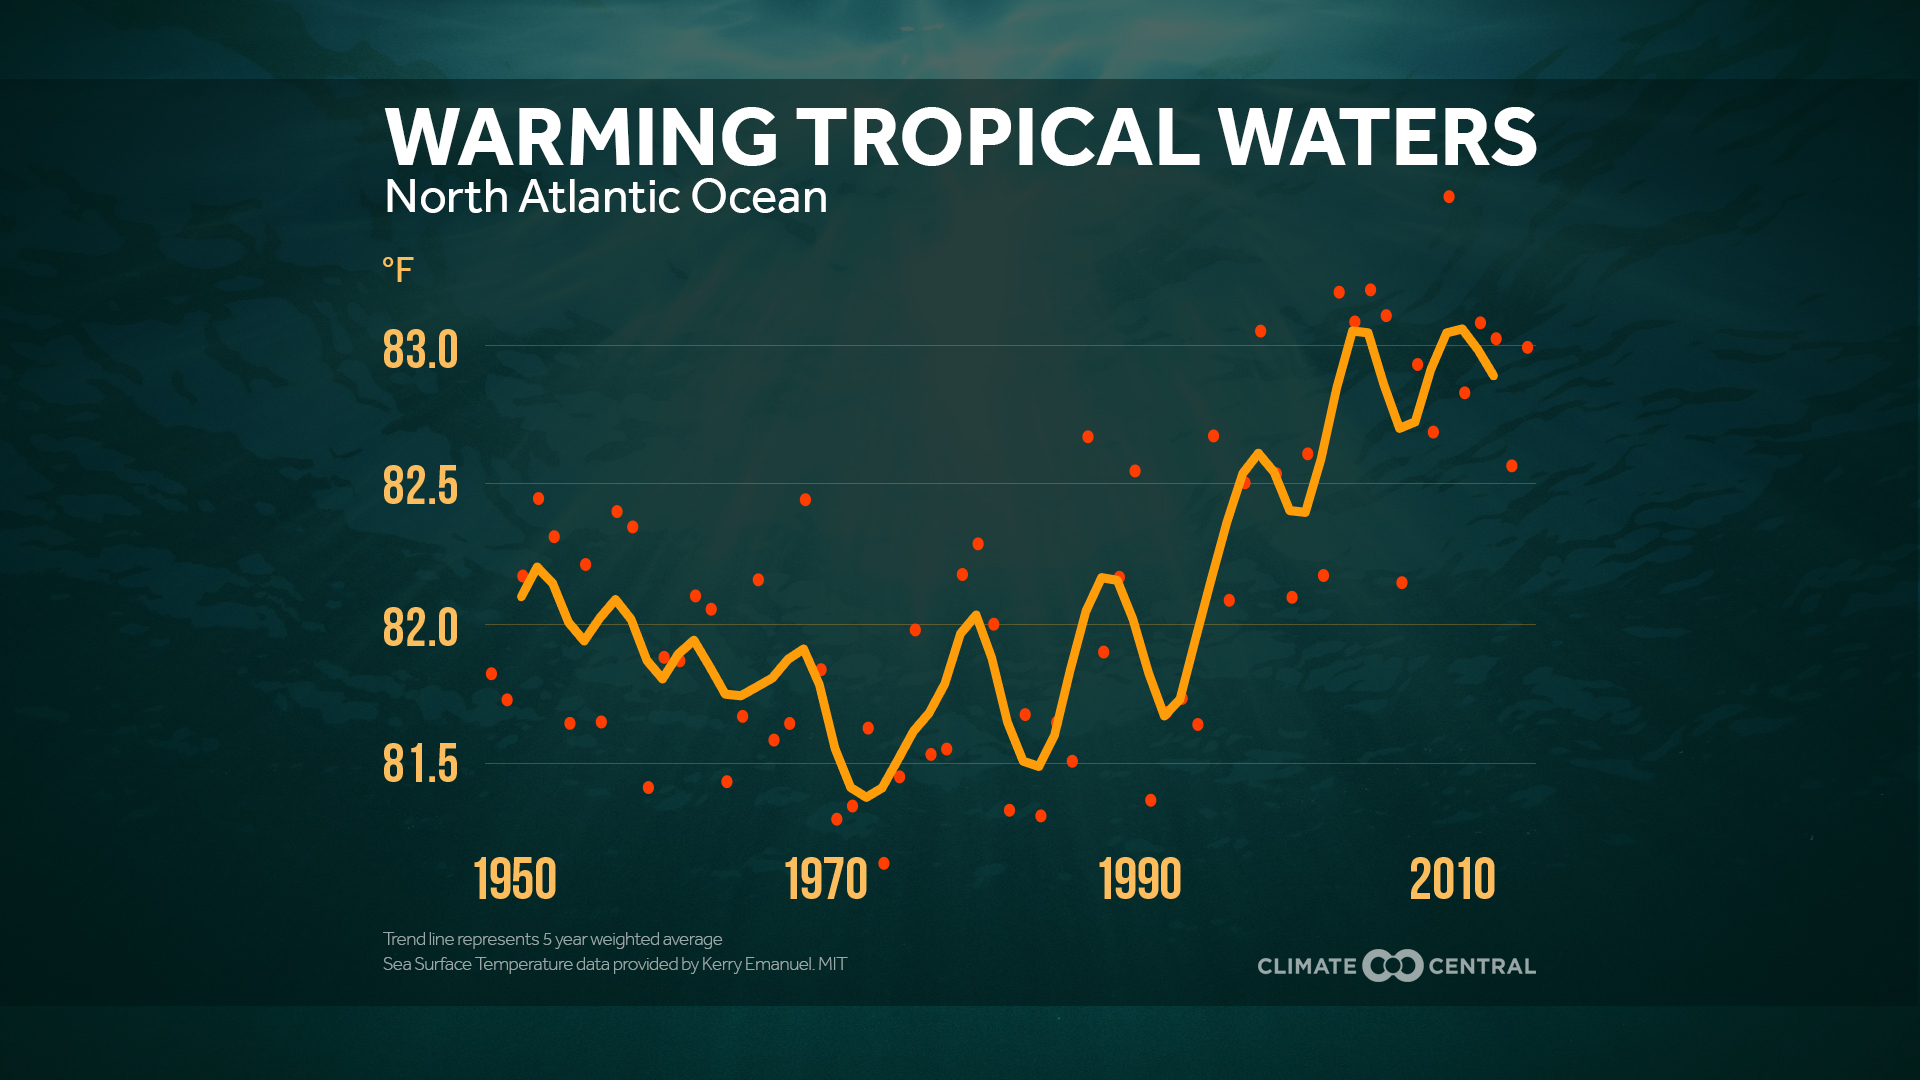 Warming Tropical Waters